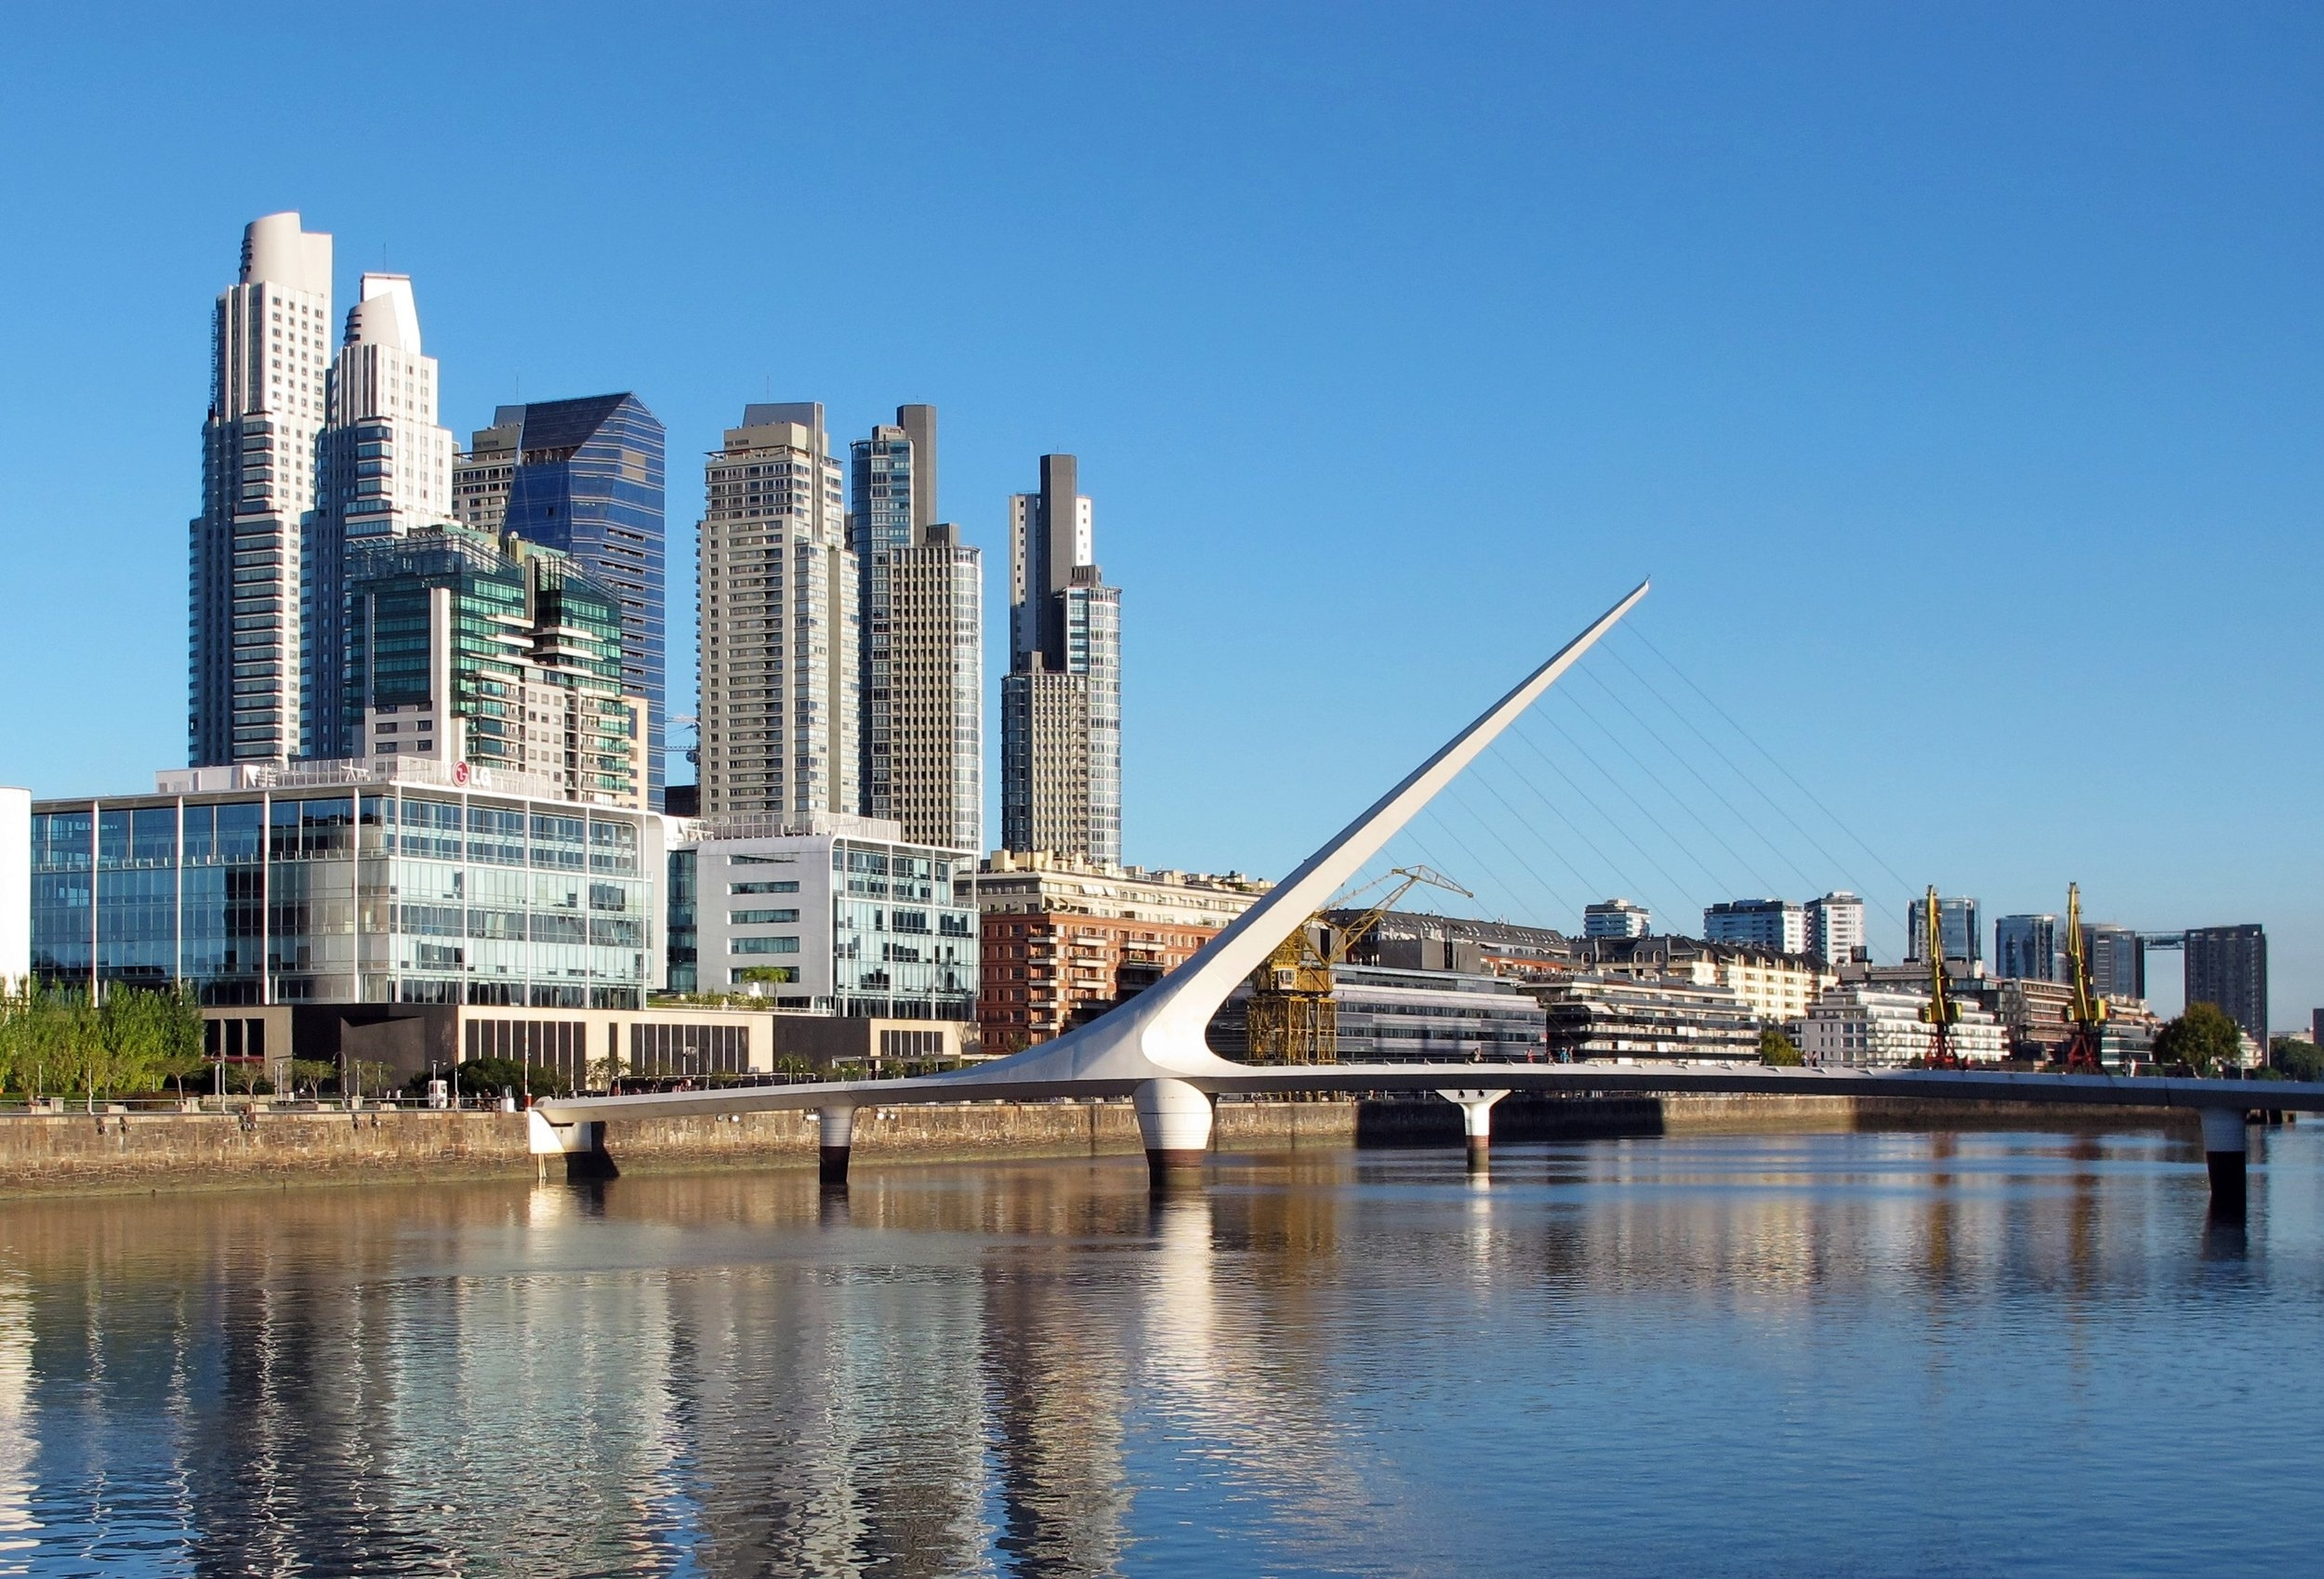 Buenos_Aires_Puerto_Madero_13.jpg